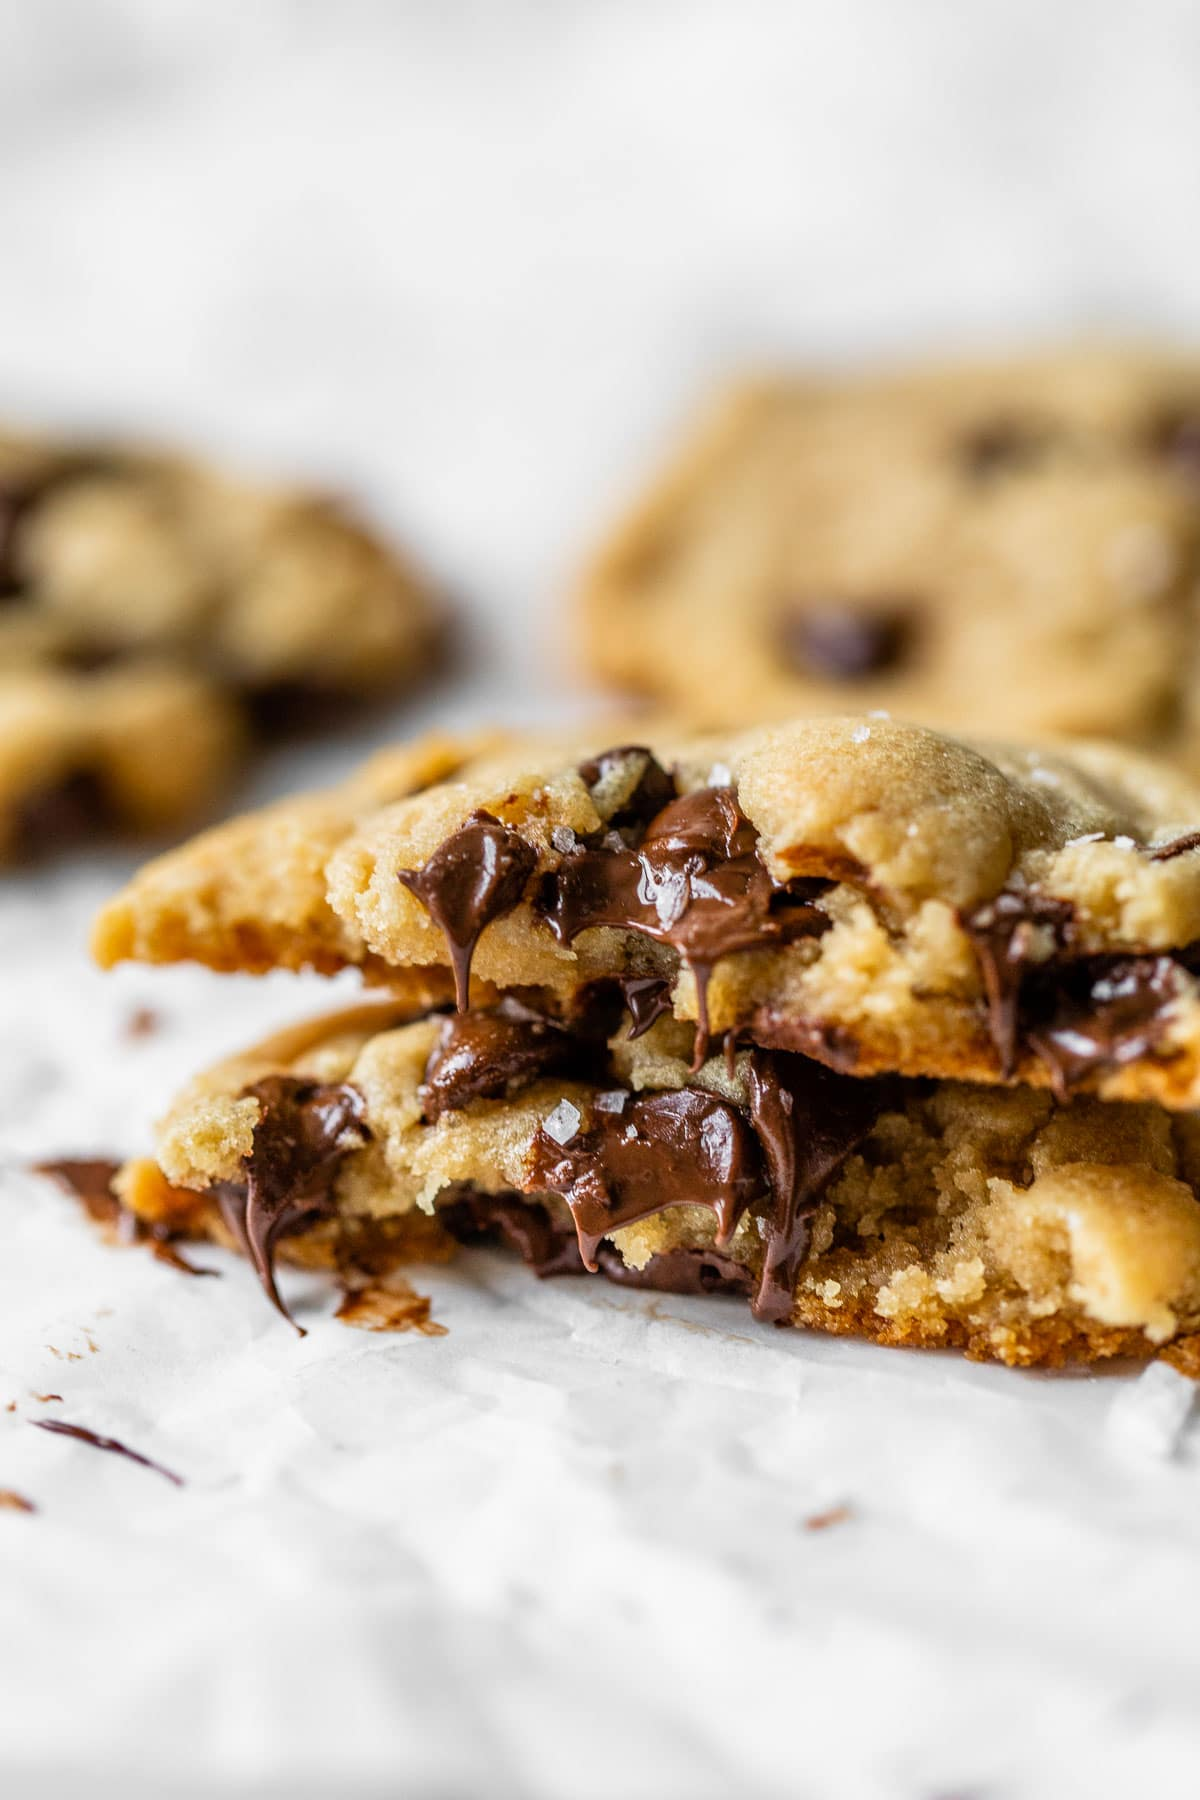 a brown chocolate chip cookie with melted chocolate chips